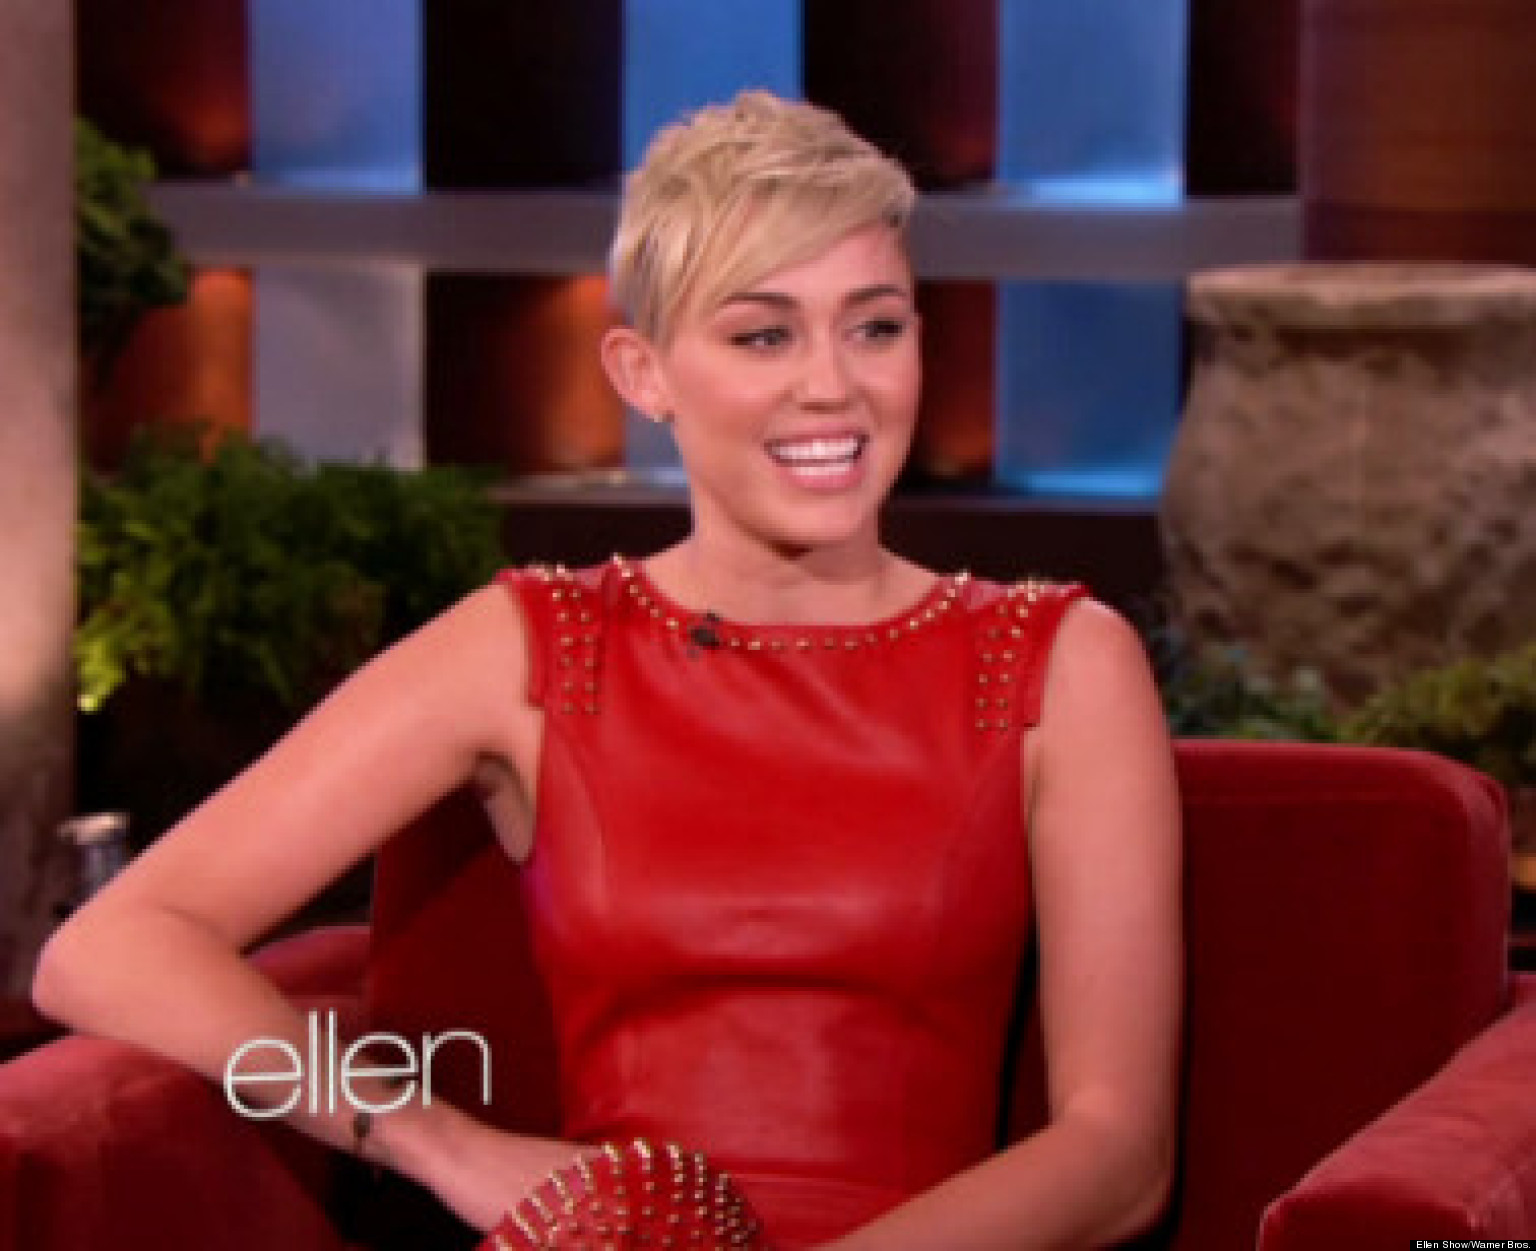 Miley Cyrus' Wedding: Singer Wants Her Ceremony With Liam Hemsworth ...